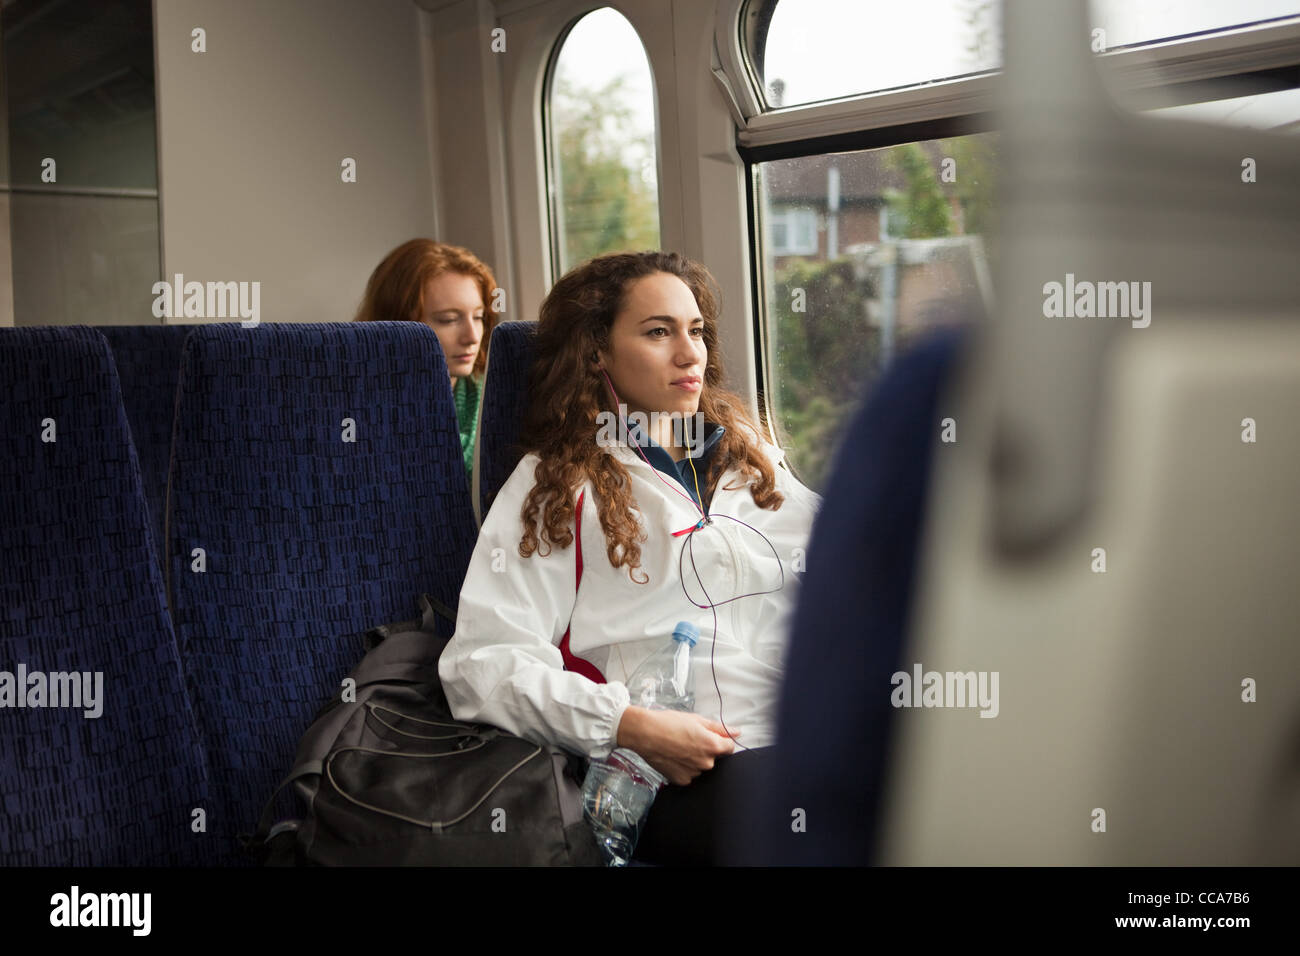 Two young women travelling on train - Stock Image